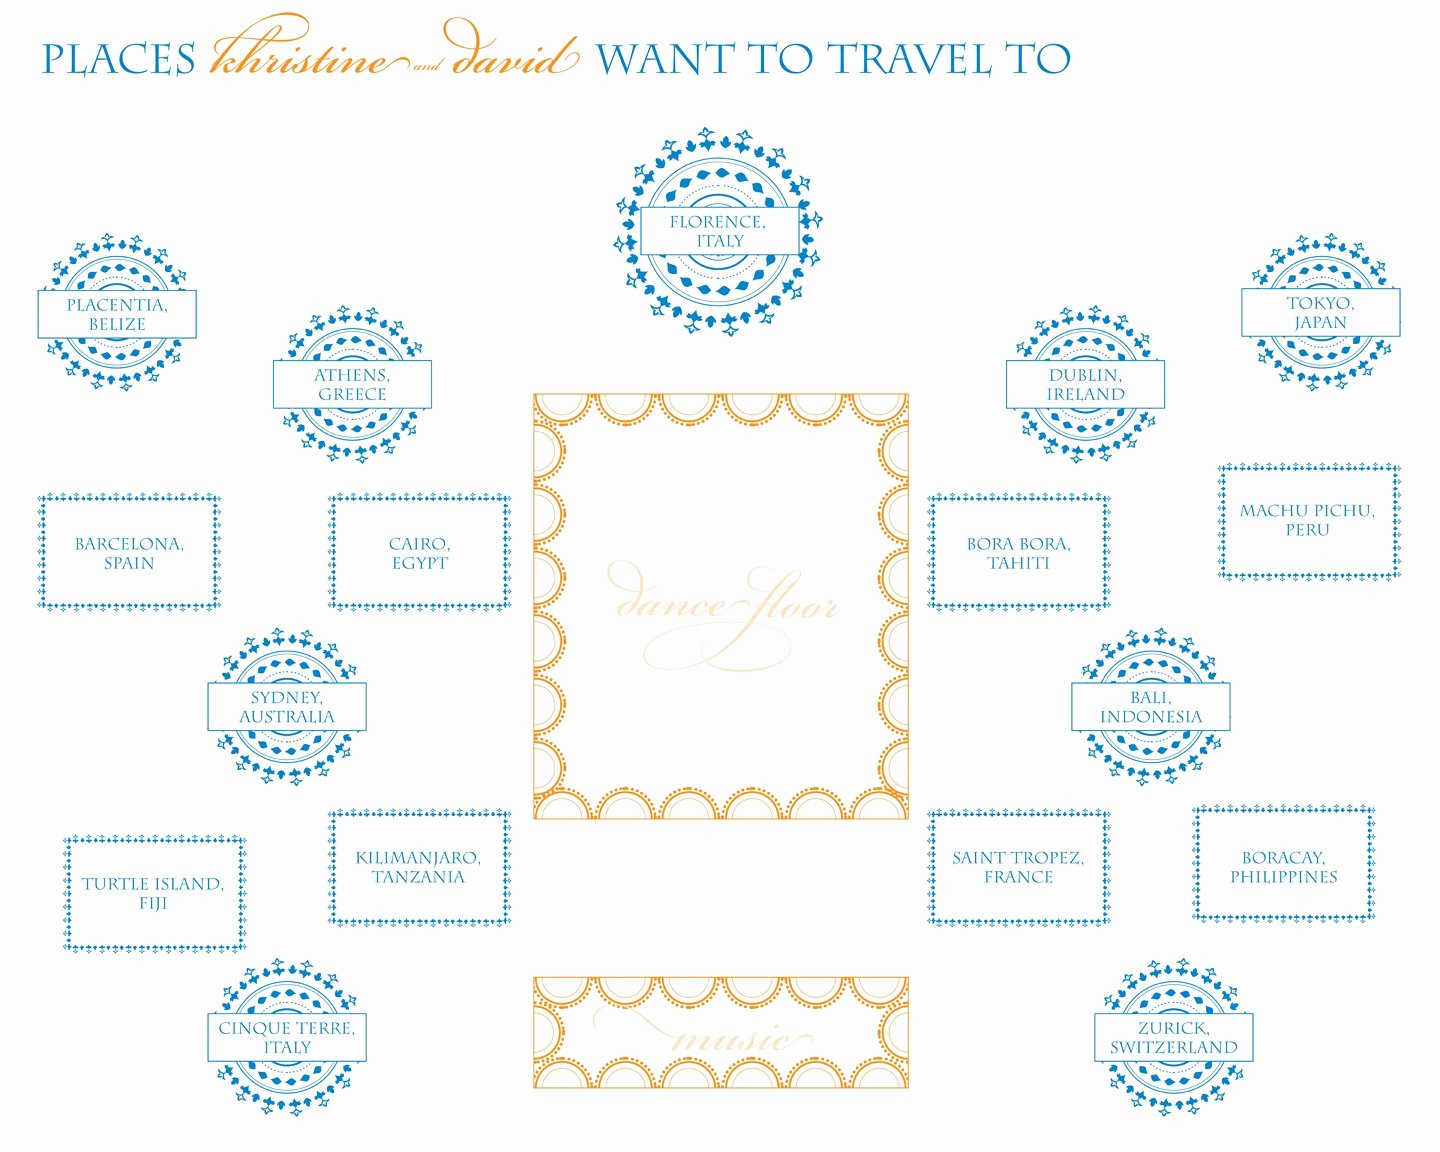 Wedding Floor Plan Template Inspirational Seating Chart Templates for Wedding Reception